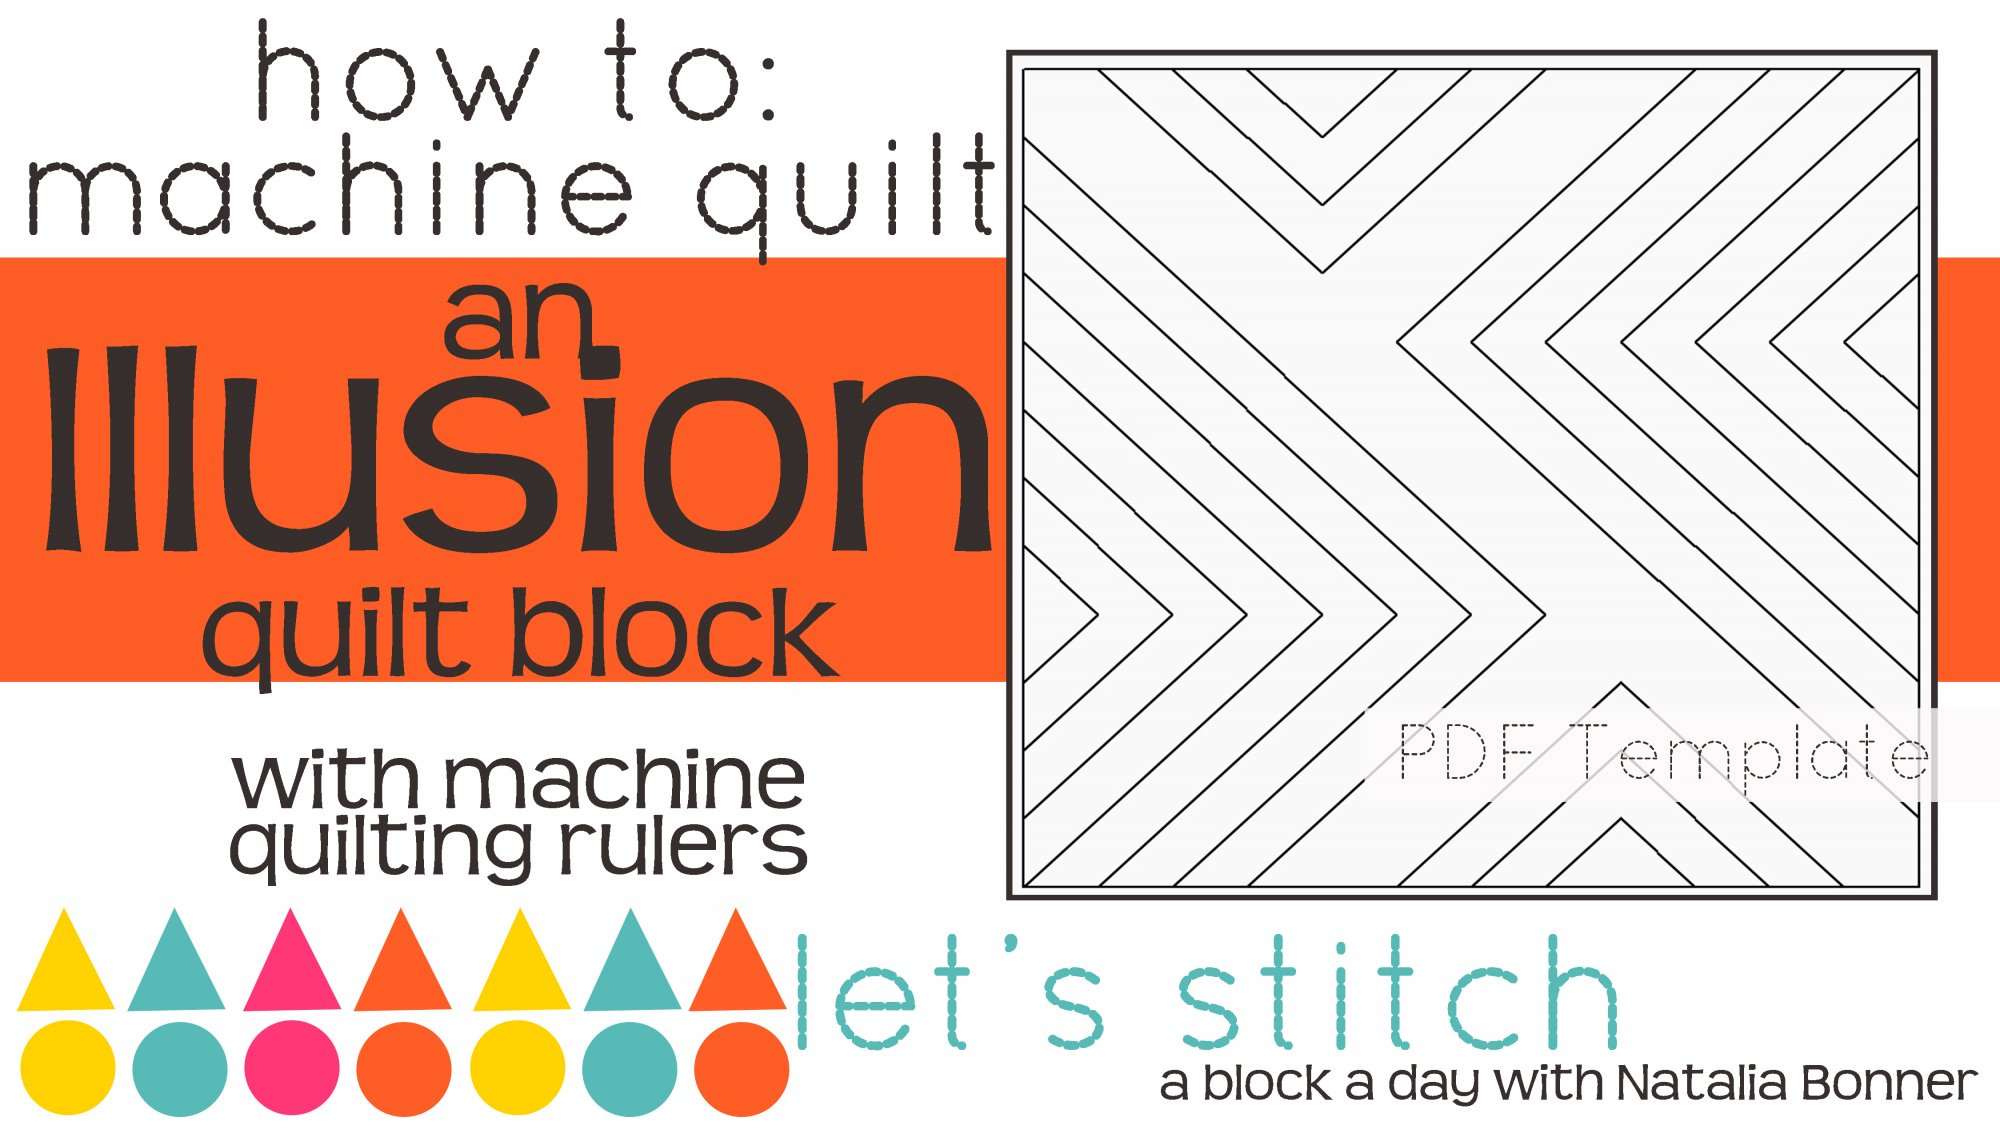 Let's Stitch - A Block a Day With Natalia Bonner - PDF - Illusion